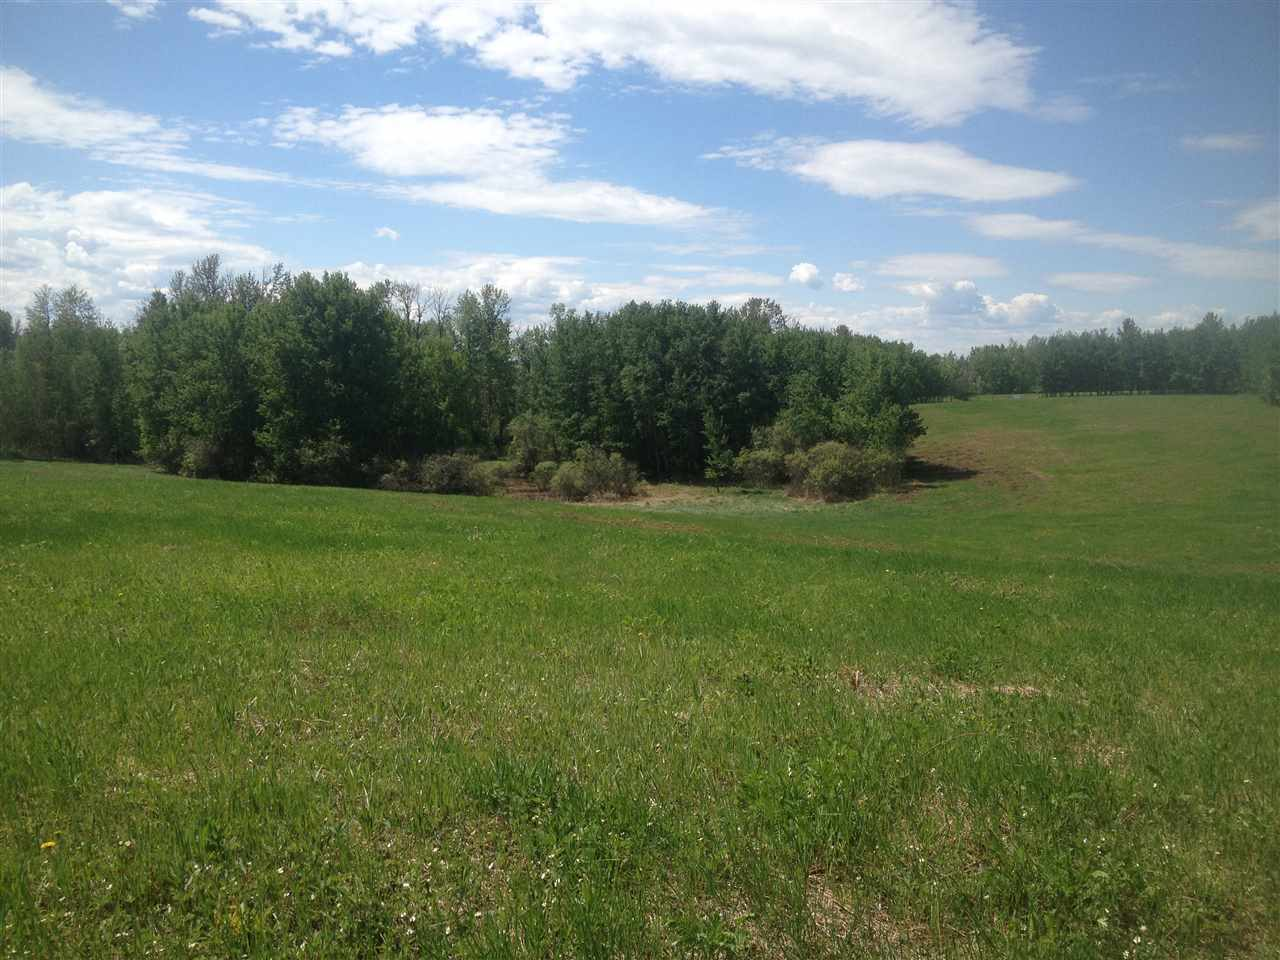 Photo 9: 52502 Range Road 22A: Rural Parkland County Rural Land/Vacant Lot for sale : MLS® # E4069524